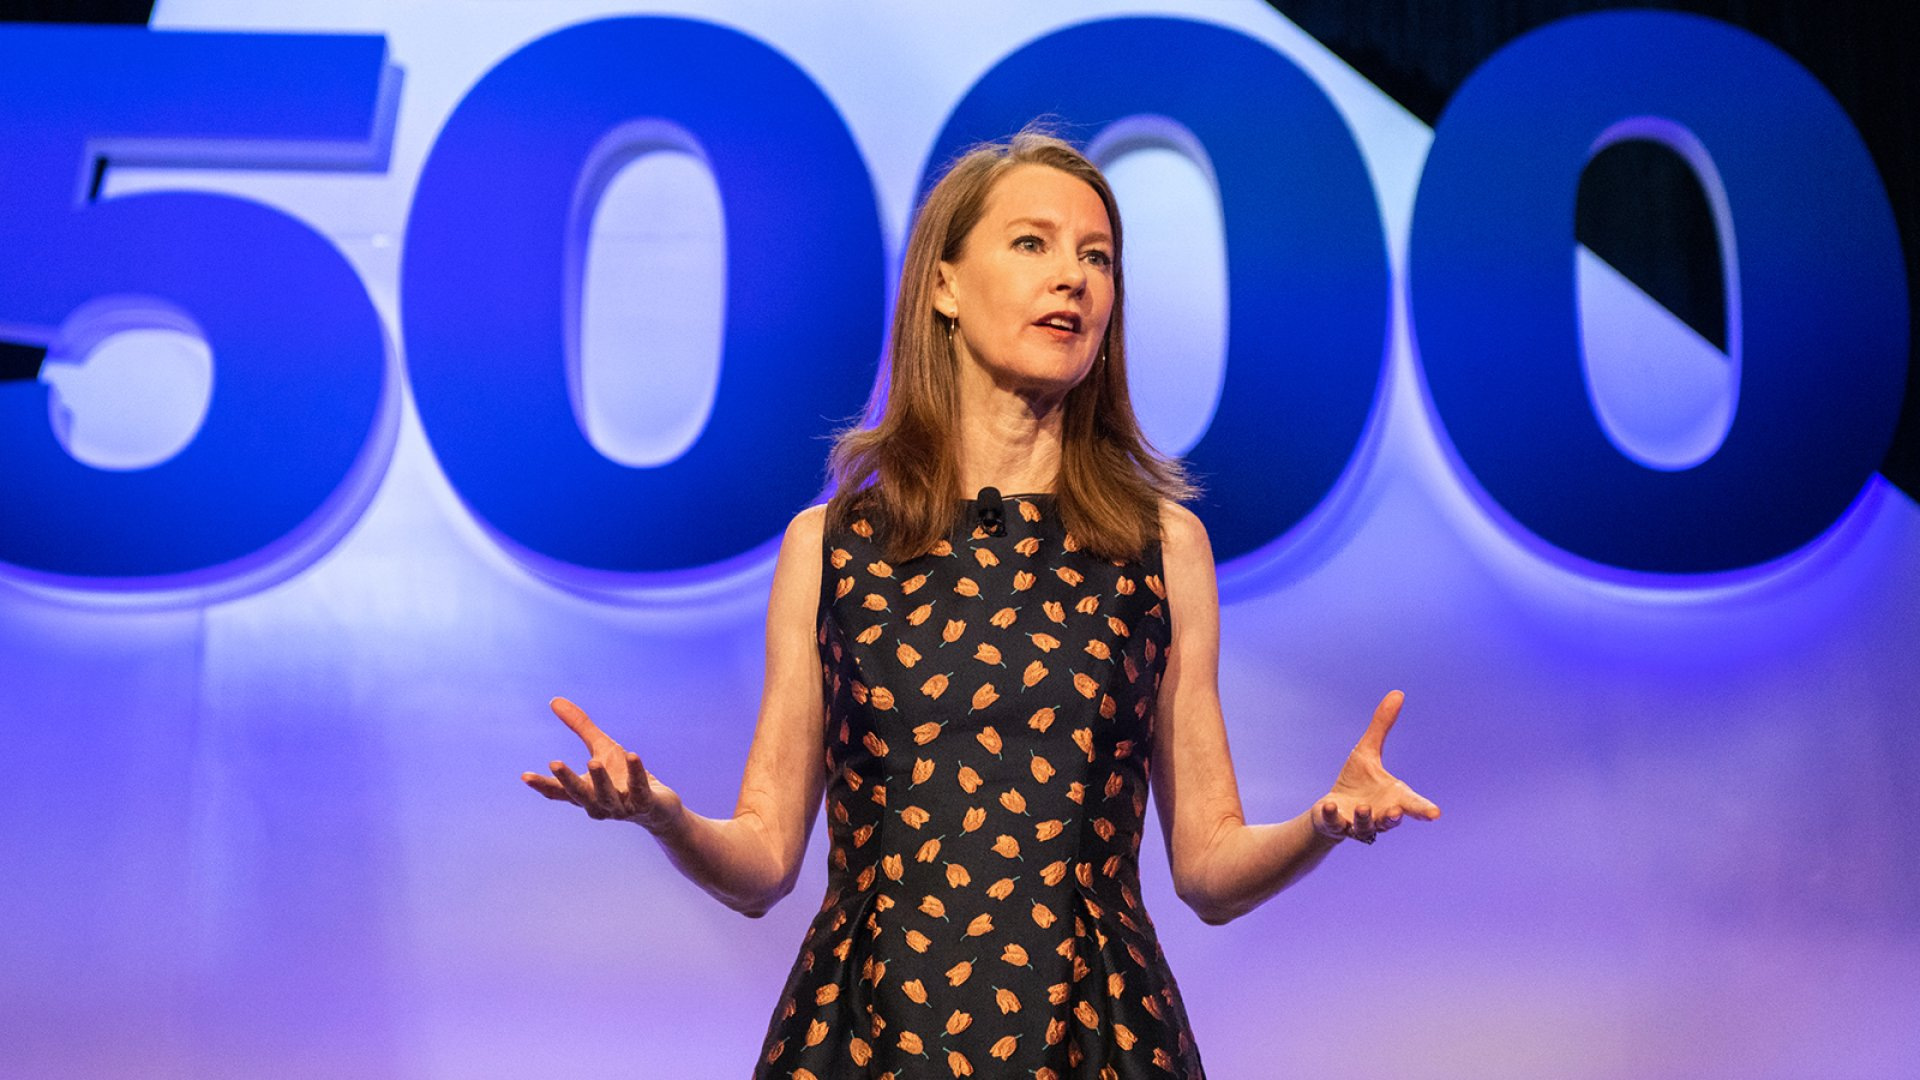 Gretchen Rubin speaks at the 2018 Inc. 5000 conference in San Antonio, Texas.